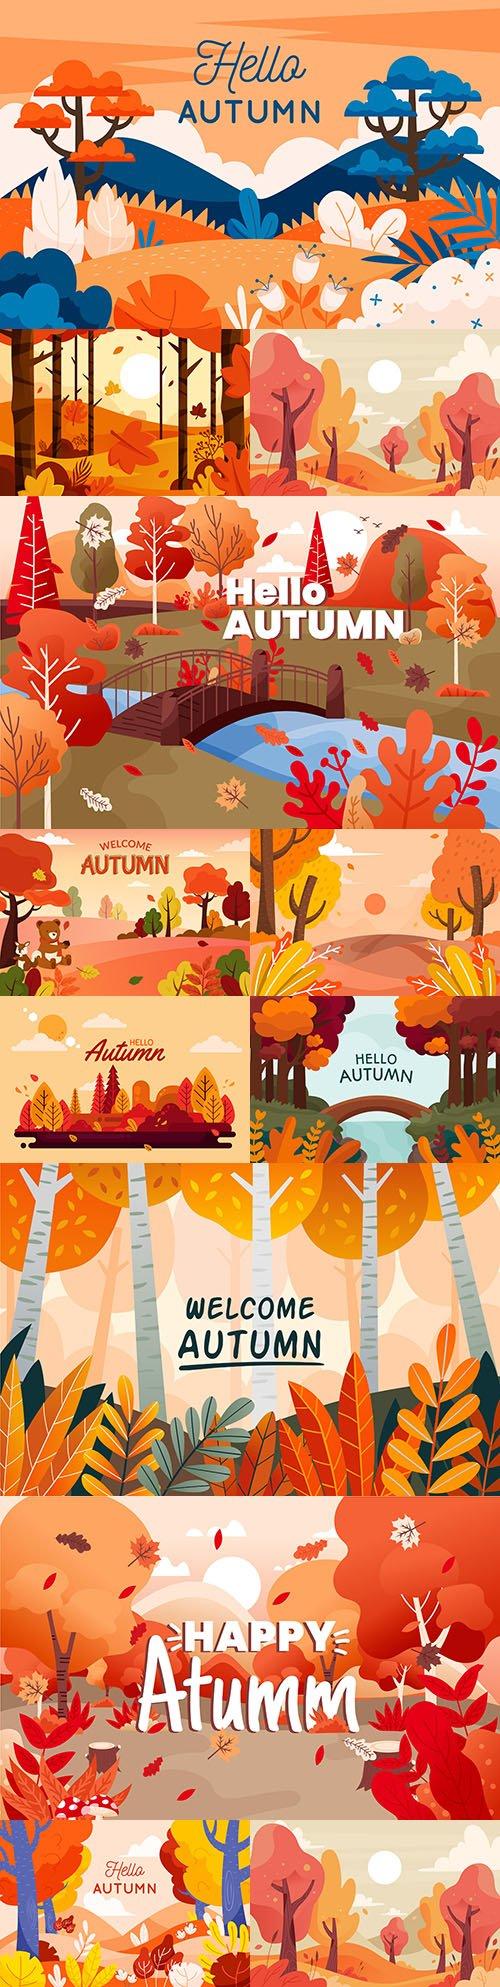 Autumn background with colorful view flat design illustration